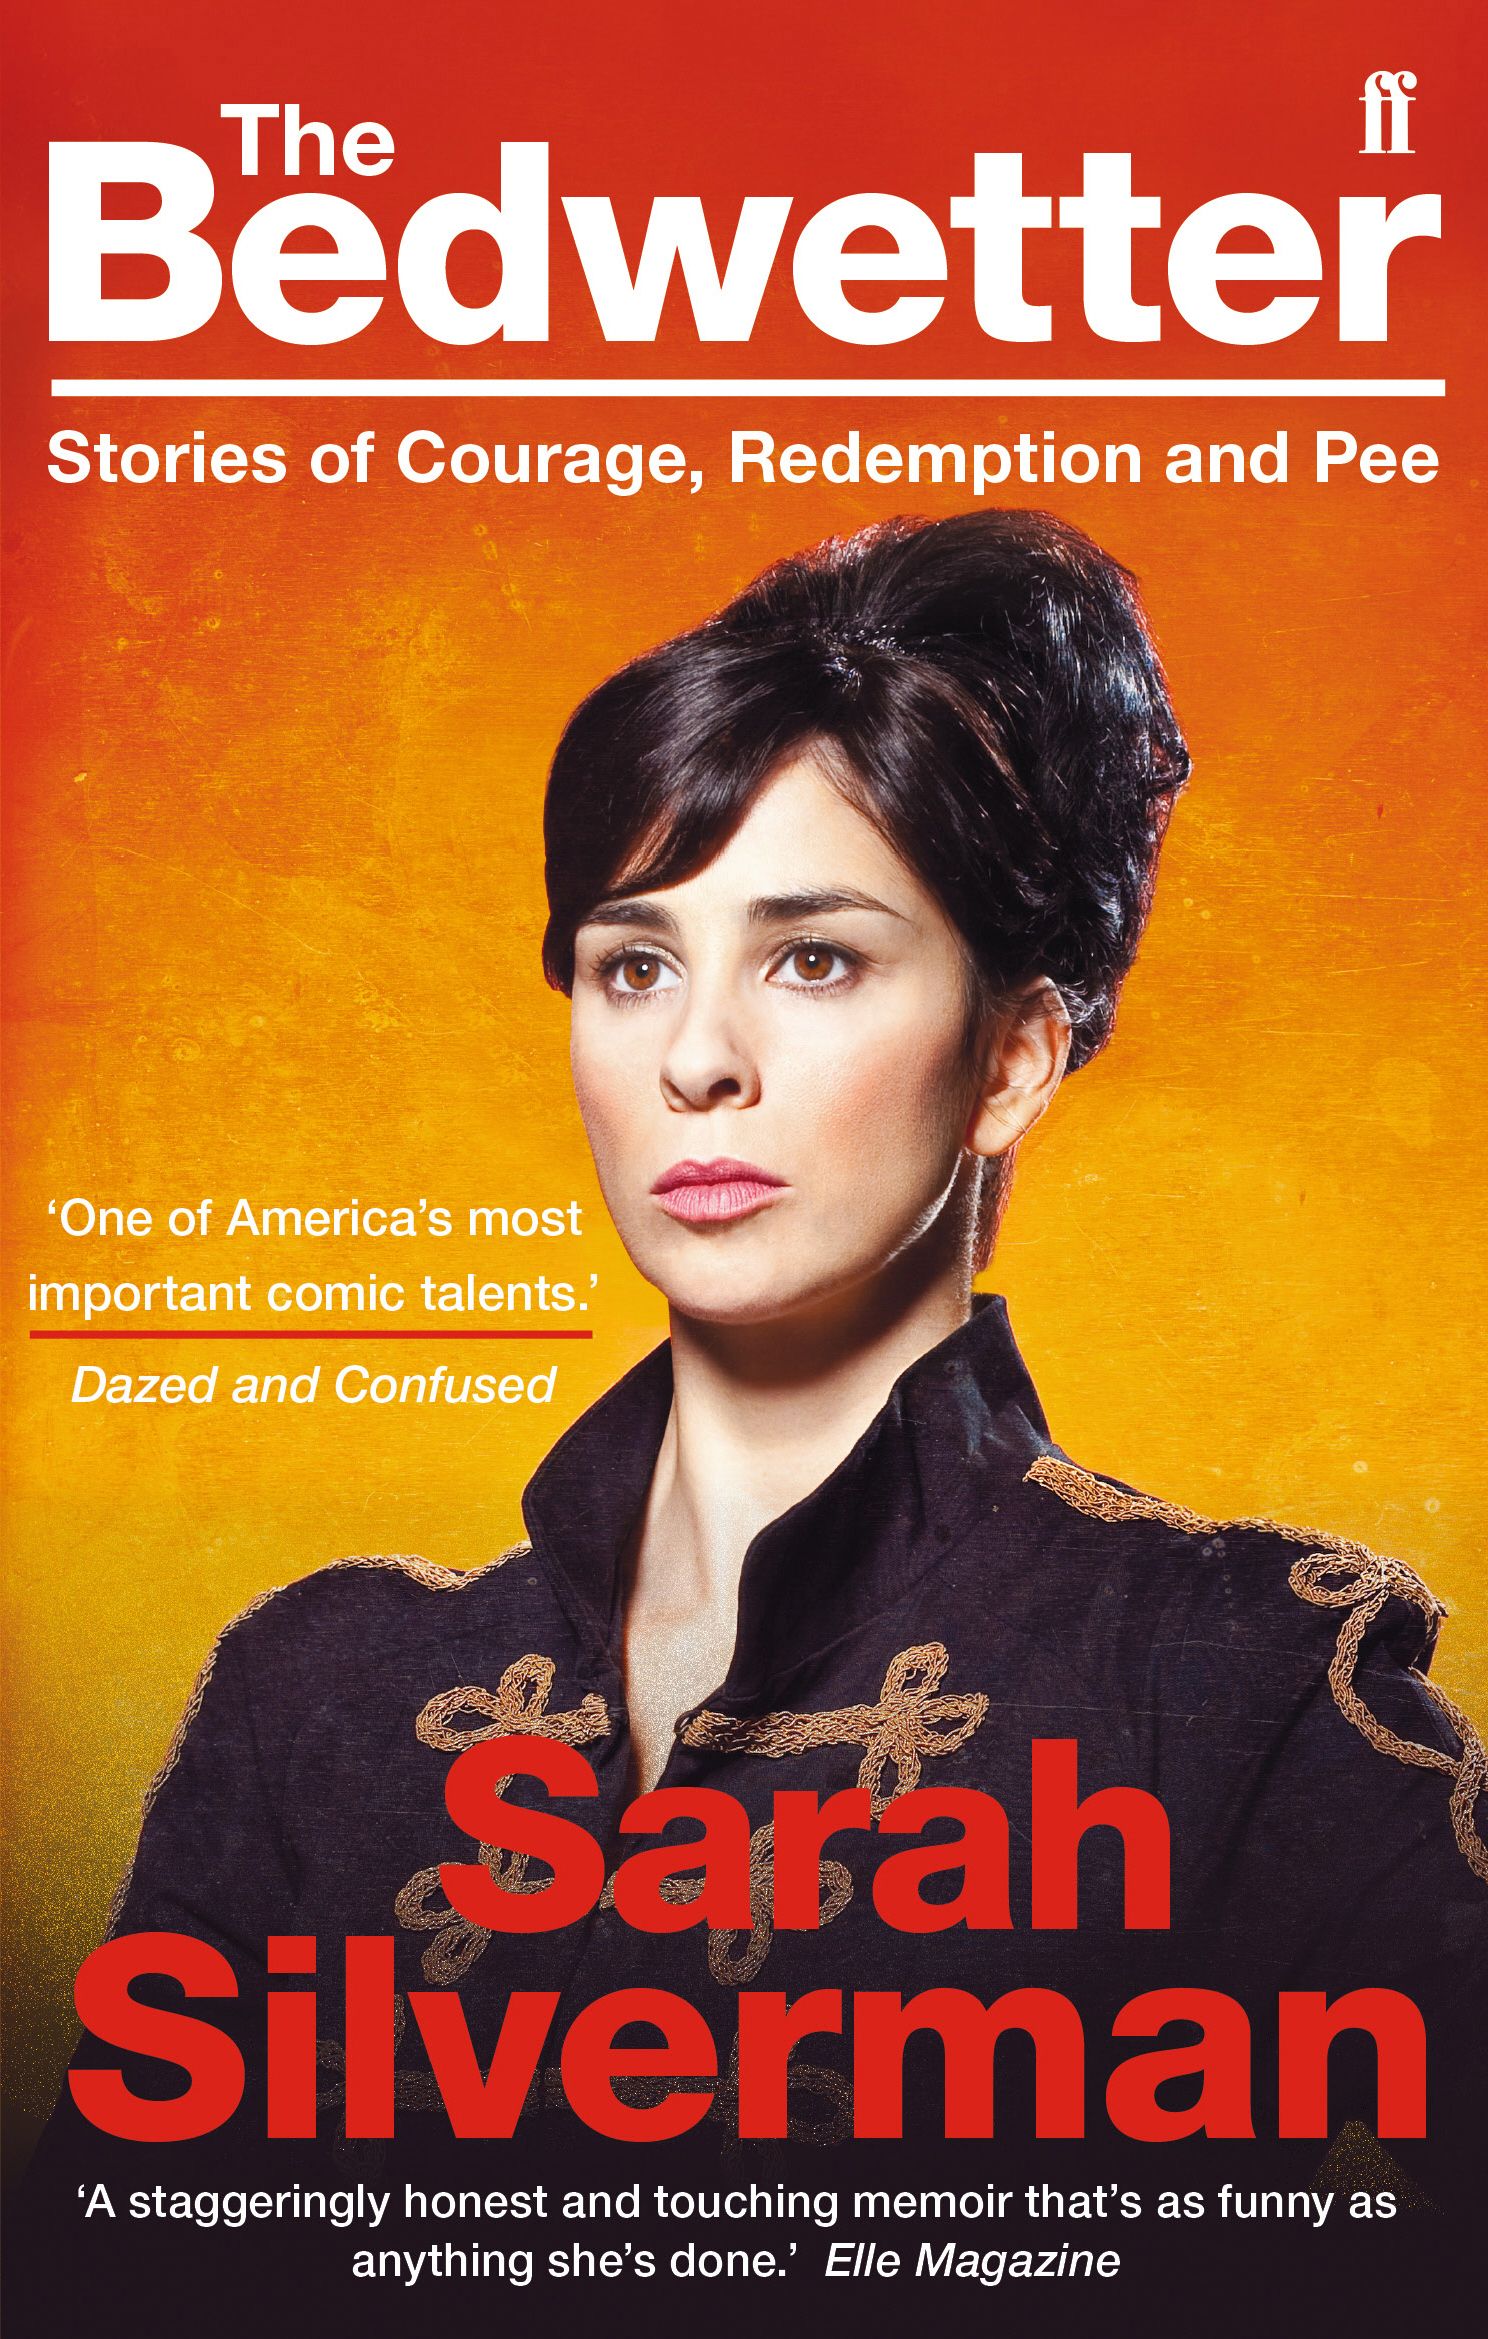 5. 'The Bedwetter' by Sarah Silverman